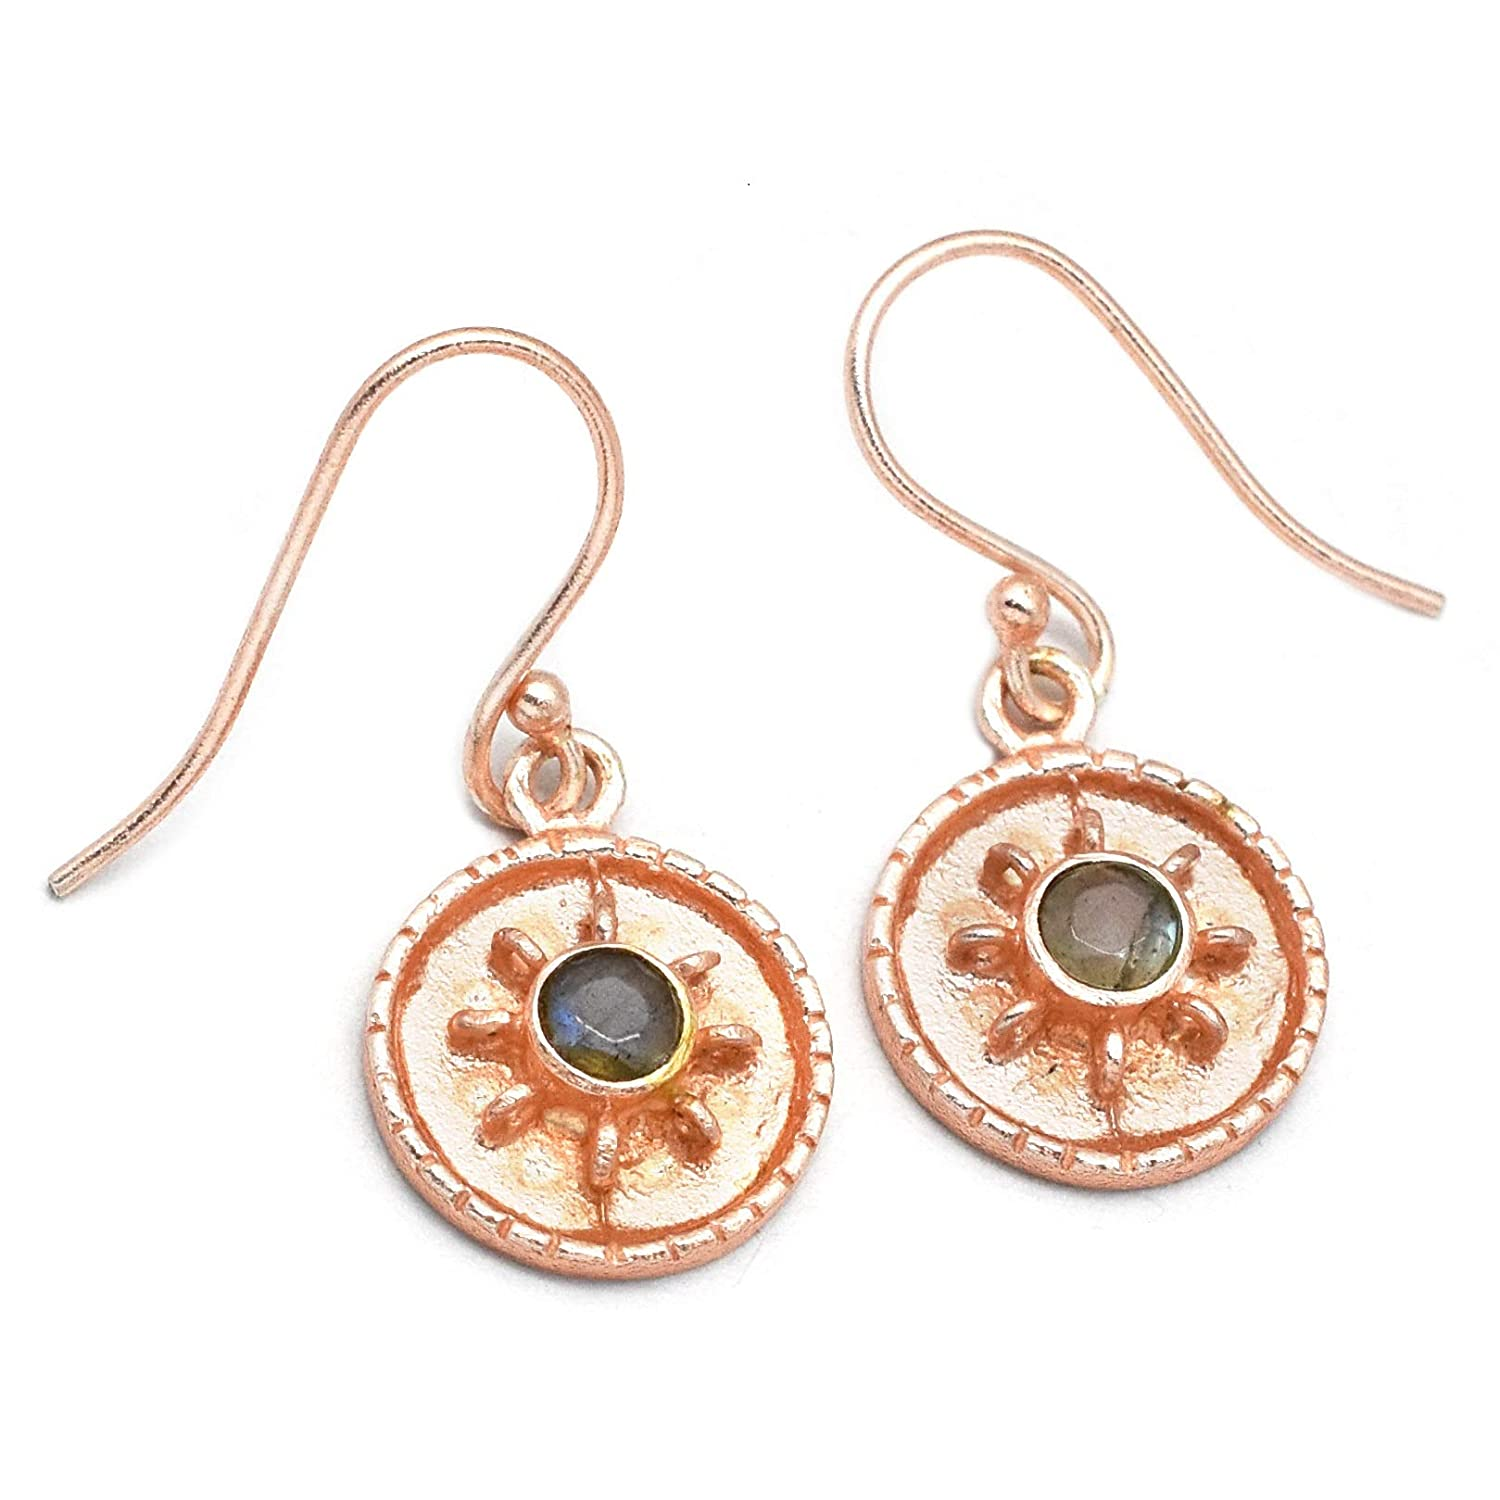 The V Collection earrings rose gold plated labradorite round shape dangling earrings for women and girls